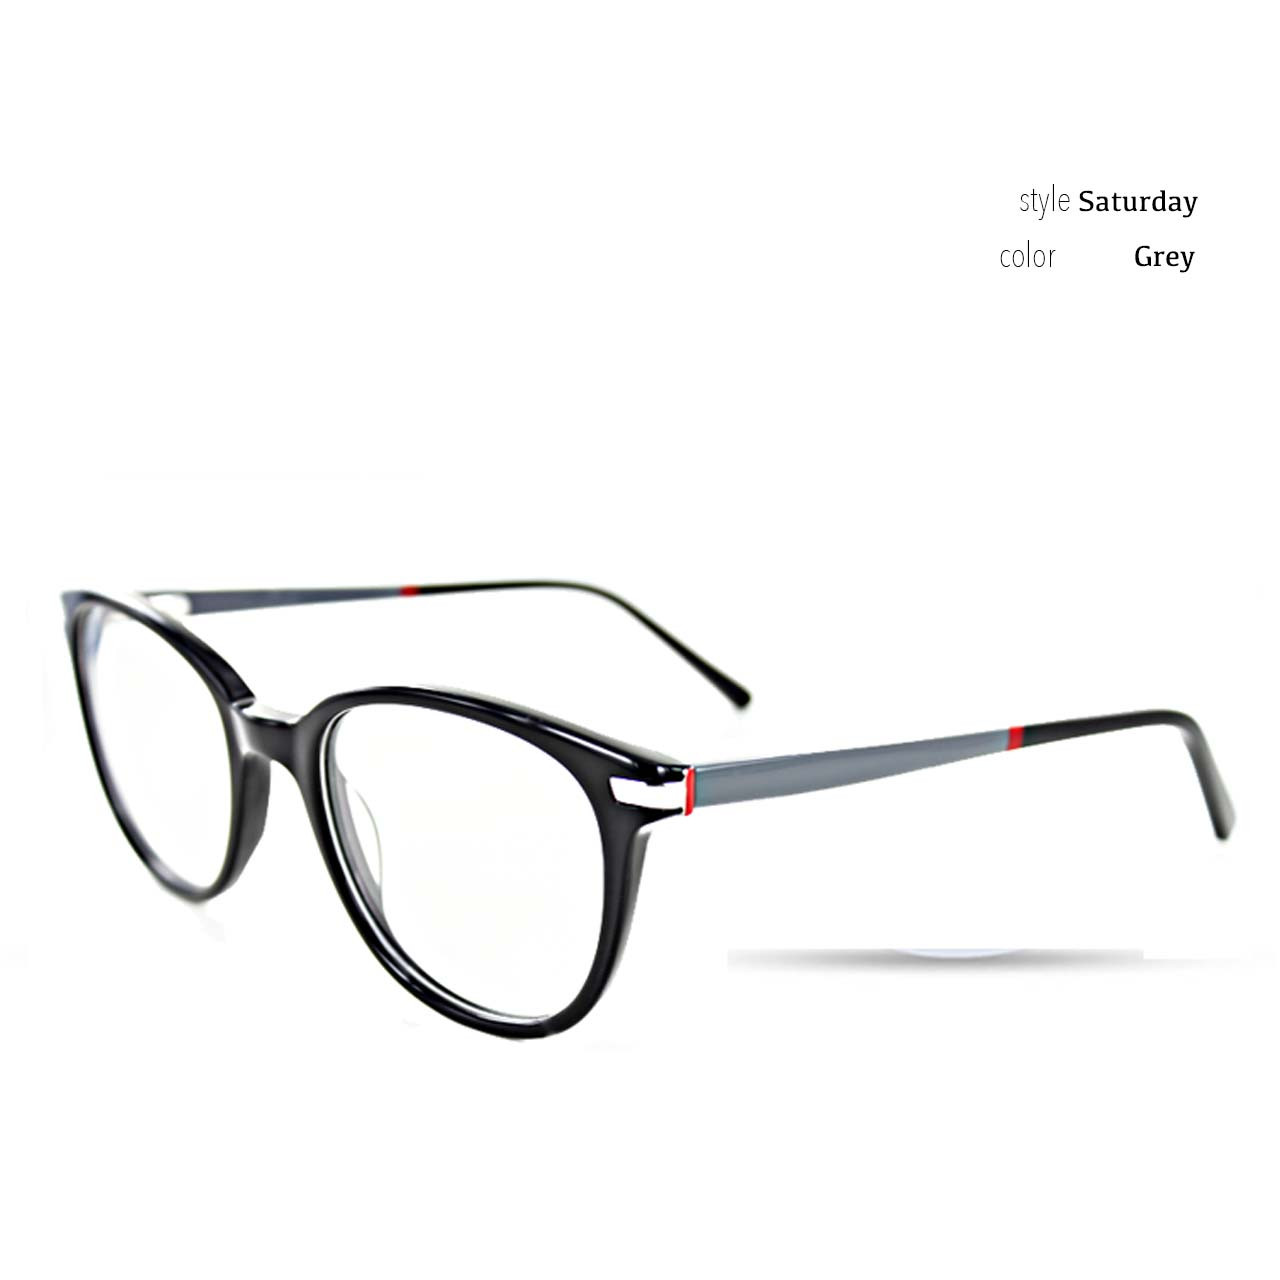 GEEK Eyewear Style Saturday Grey